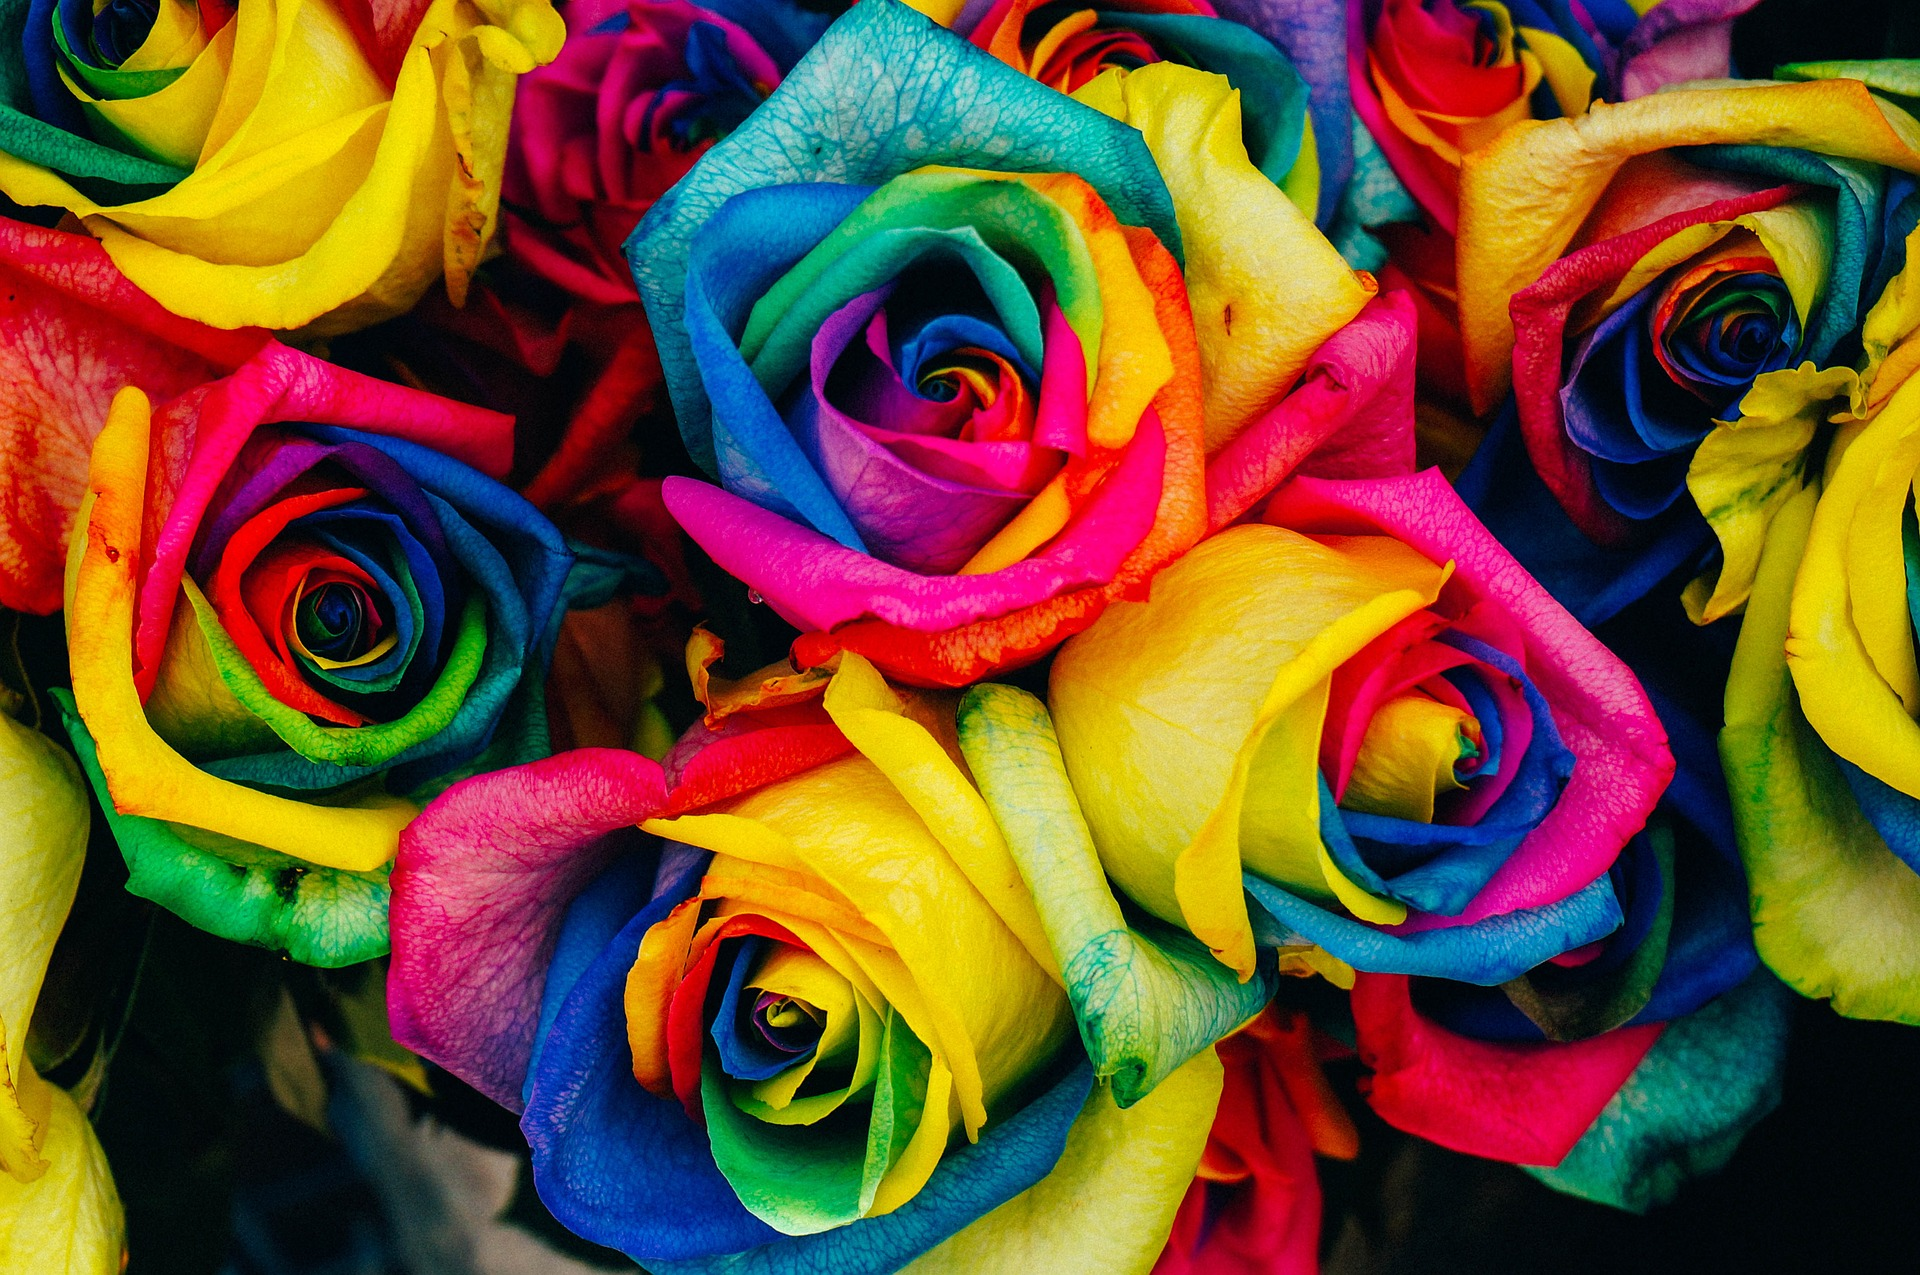 All You Need to Know about Planting Roses